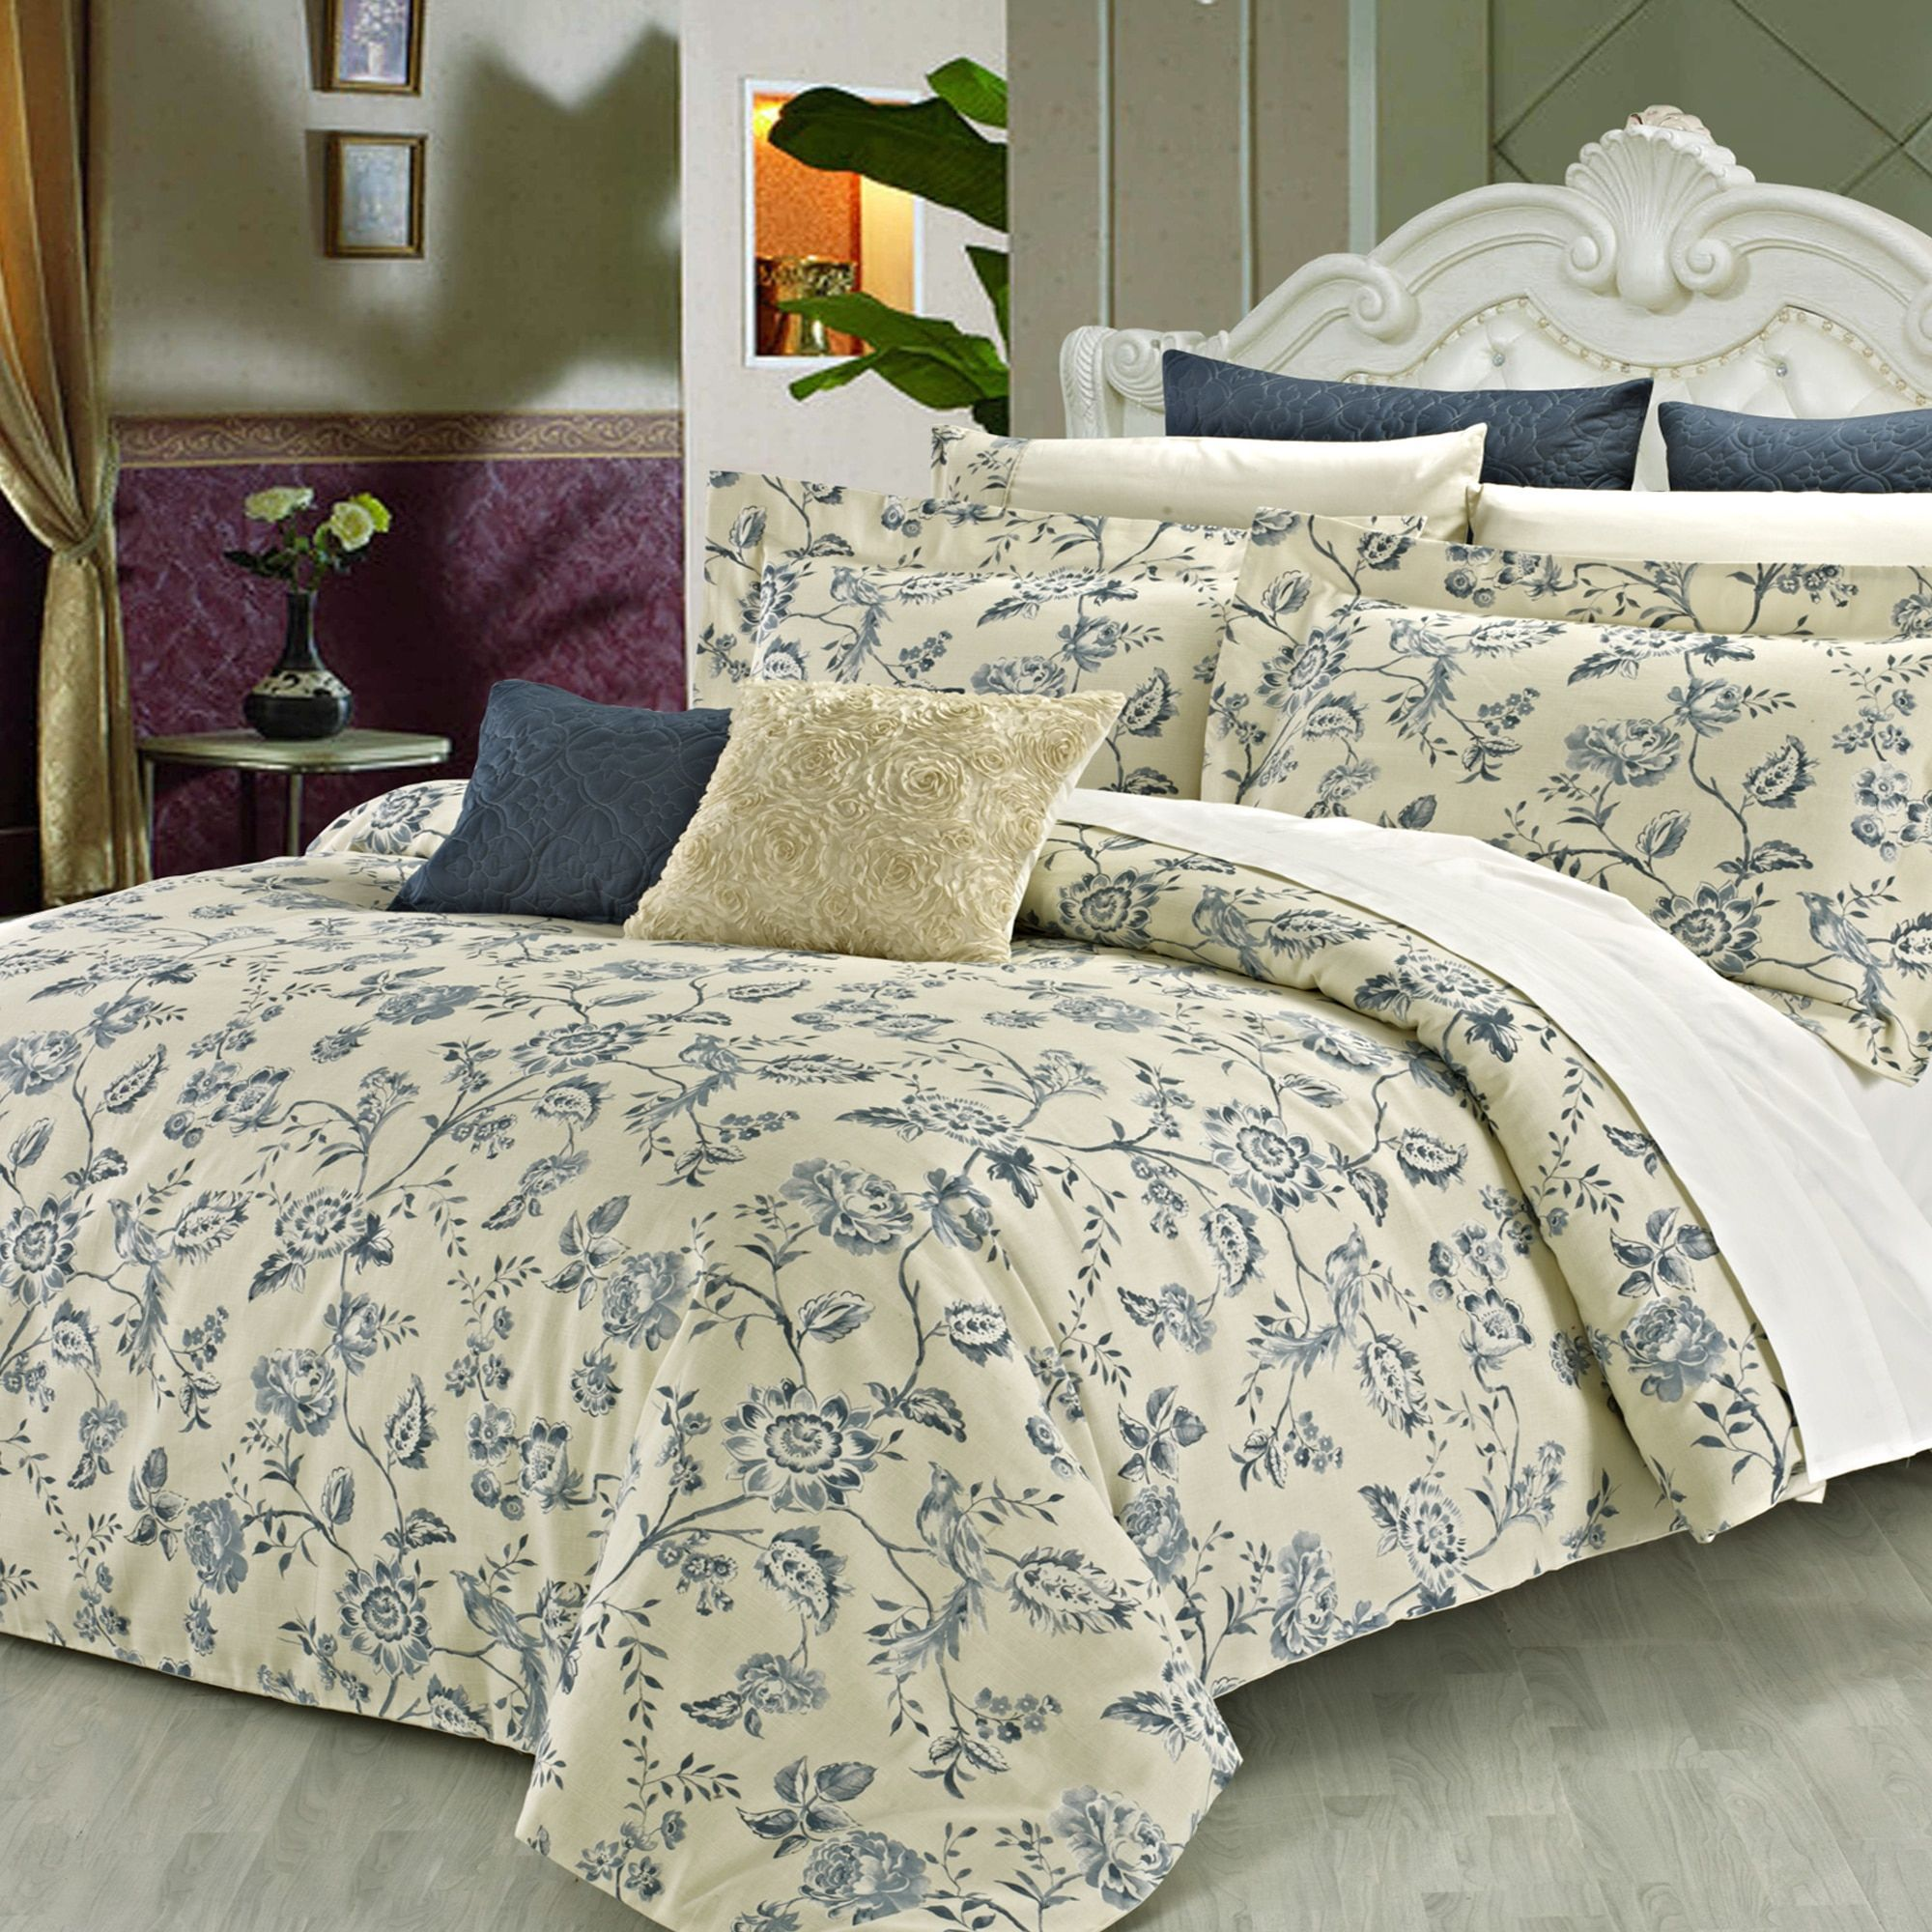 owings linens bed products king cream bedrooms set duvet pc